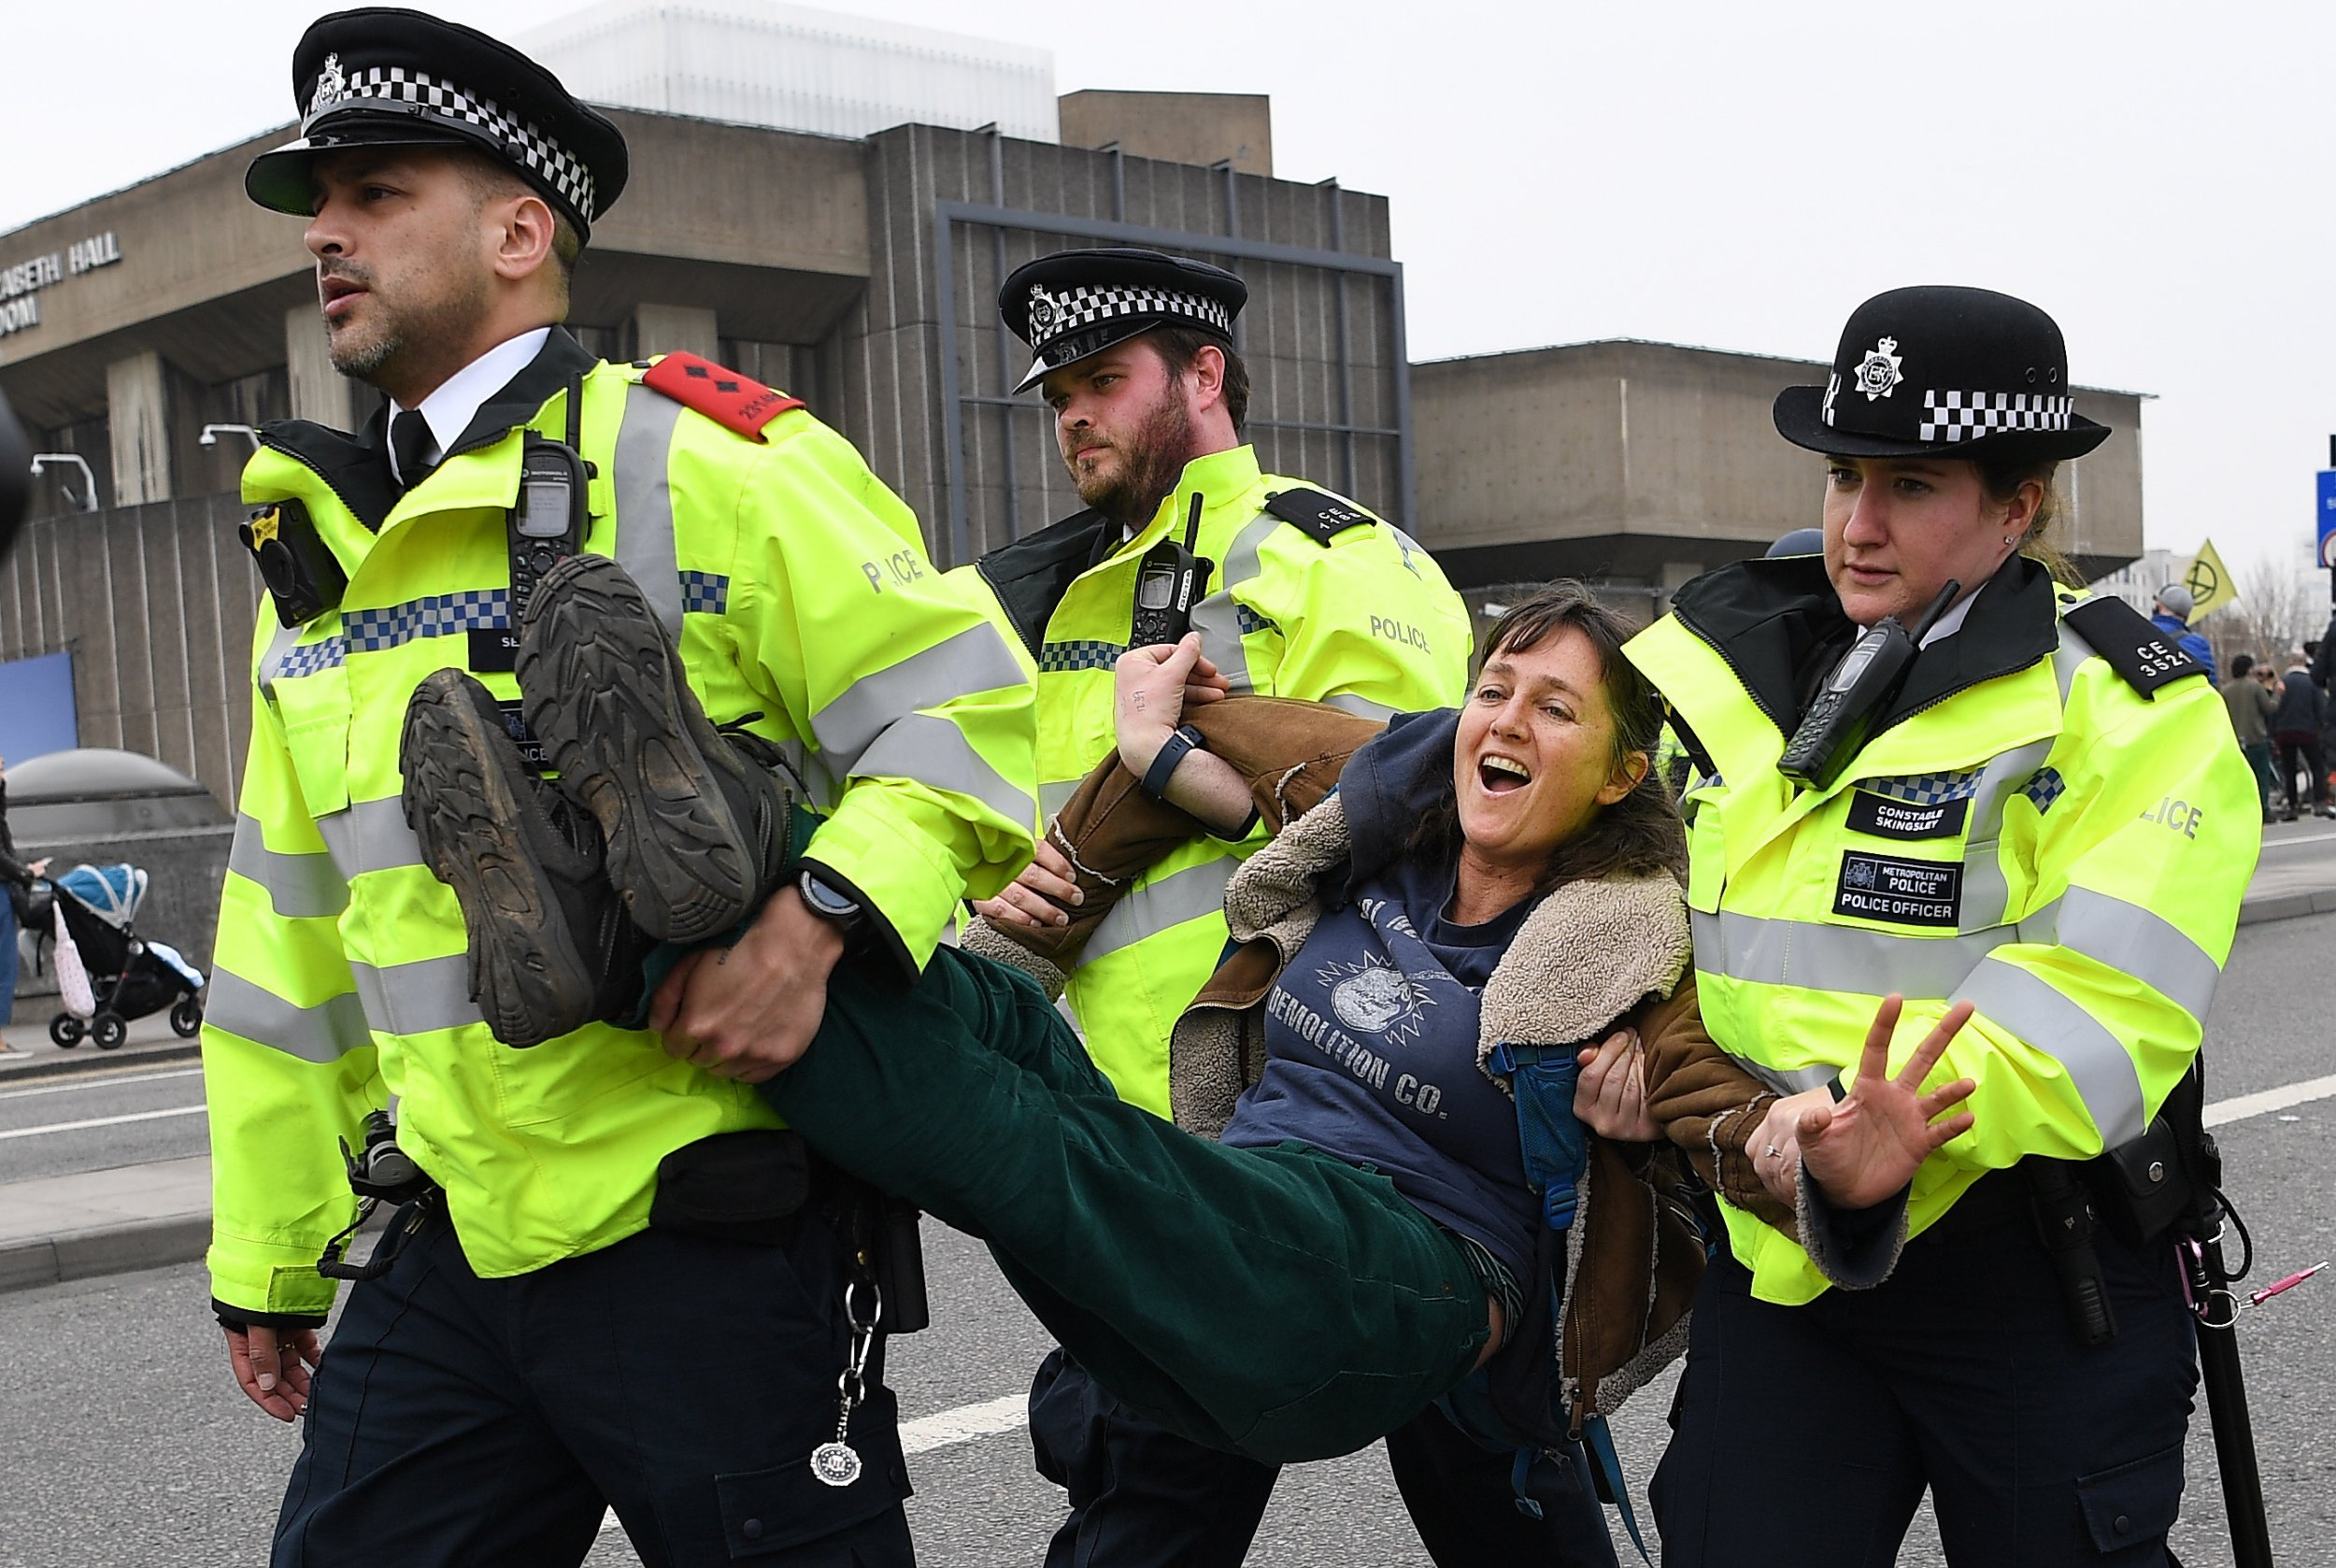 epa07510037 Police arrest a climate change protester on Waterloo Bridge during Earth Day climate change protests in London, Britain, 16 April 2019. Waterloo Bridge remains closed as protests continue. EPA/ANDY RAIN